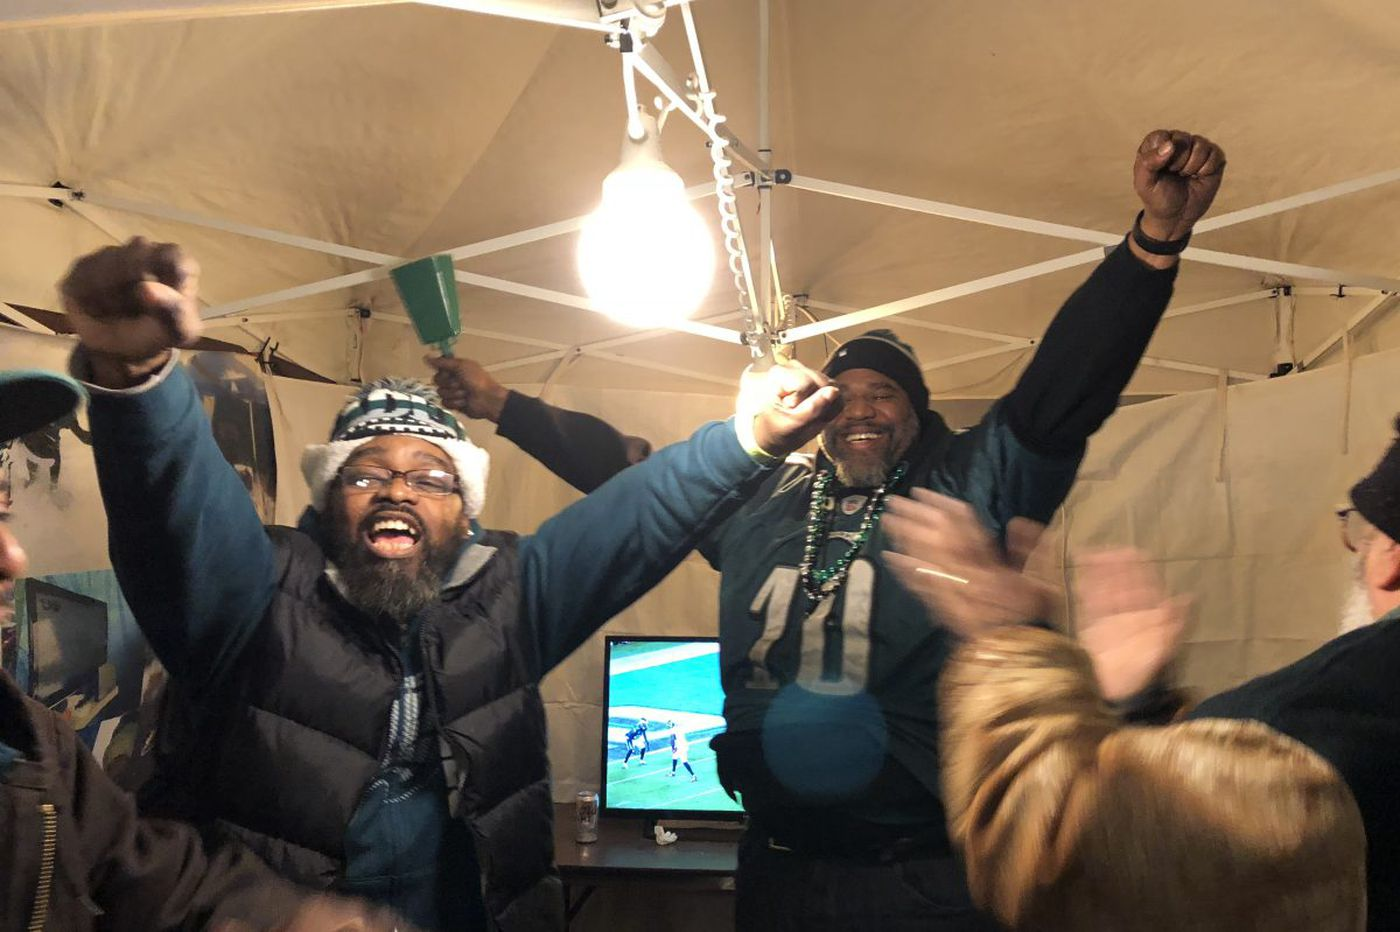 Outside the Linc, a sea of frozen jubilation after Eagles victory